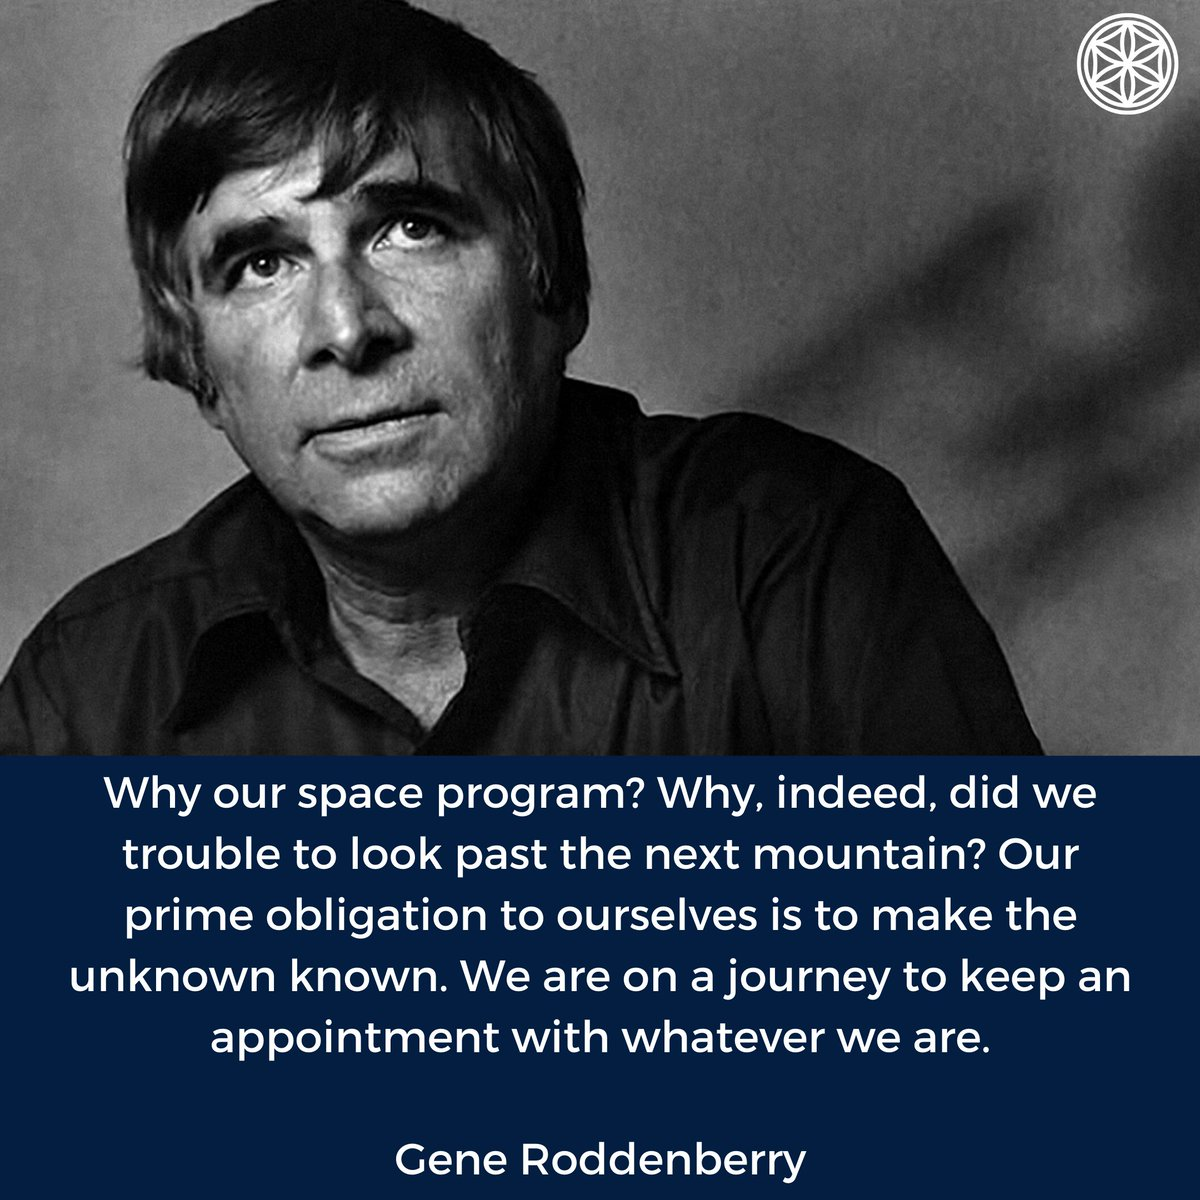 Today we want to share the wisdom of the iconic screenwriter and creator of the original Star Trek series, Gene Roddenberry. Do you agree that it is our obligation to make the unknown known?  #AsgardiaSpaceNationpic.twitter.com/GdW4edhN3Y